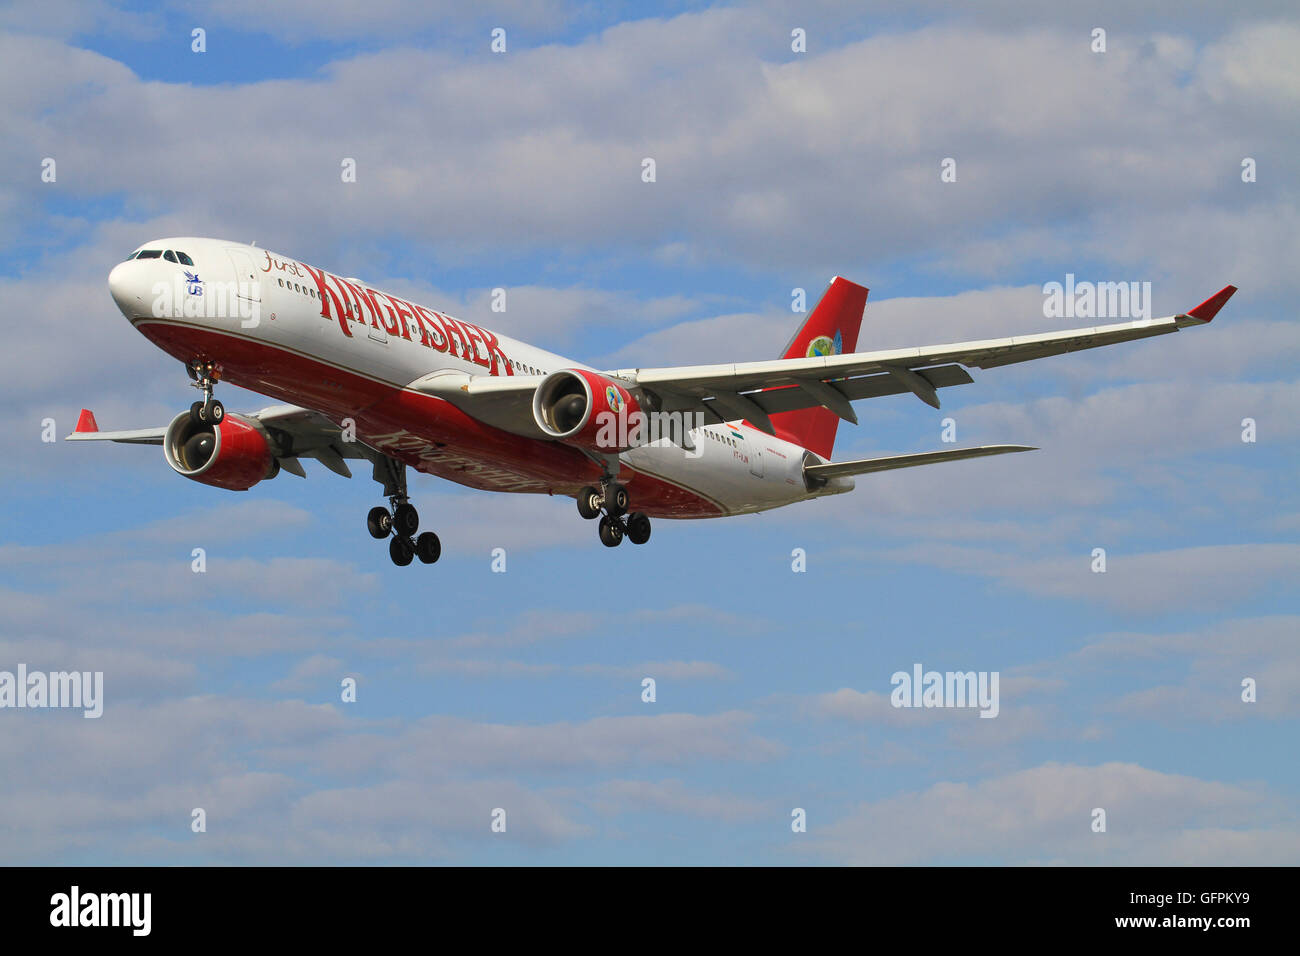 Heathrow/England August 10, 2012: Airbus A330 from kingfisher landing at Heathrow/Airport. - Stock Image